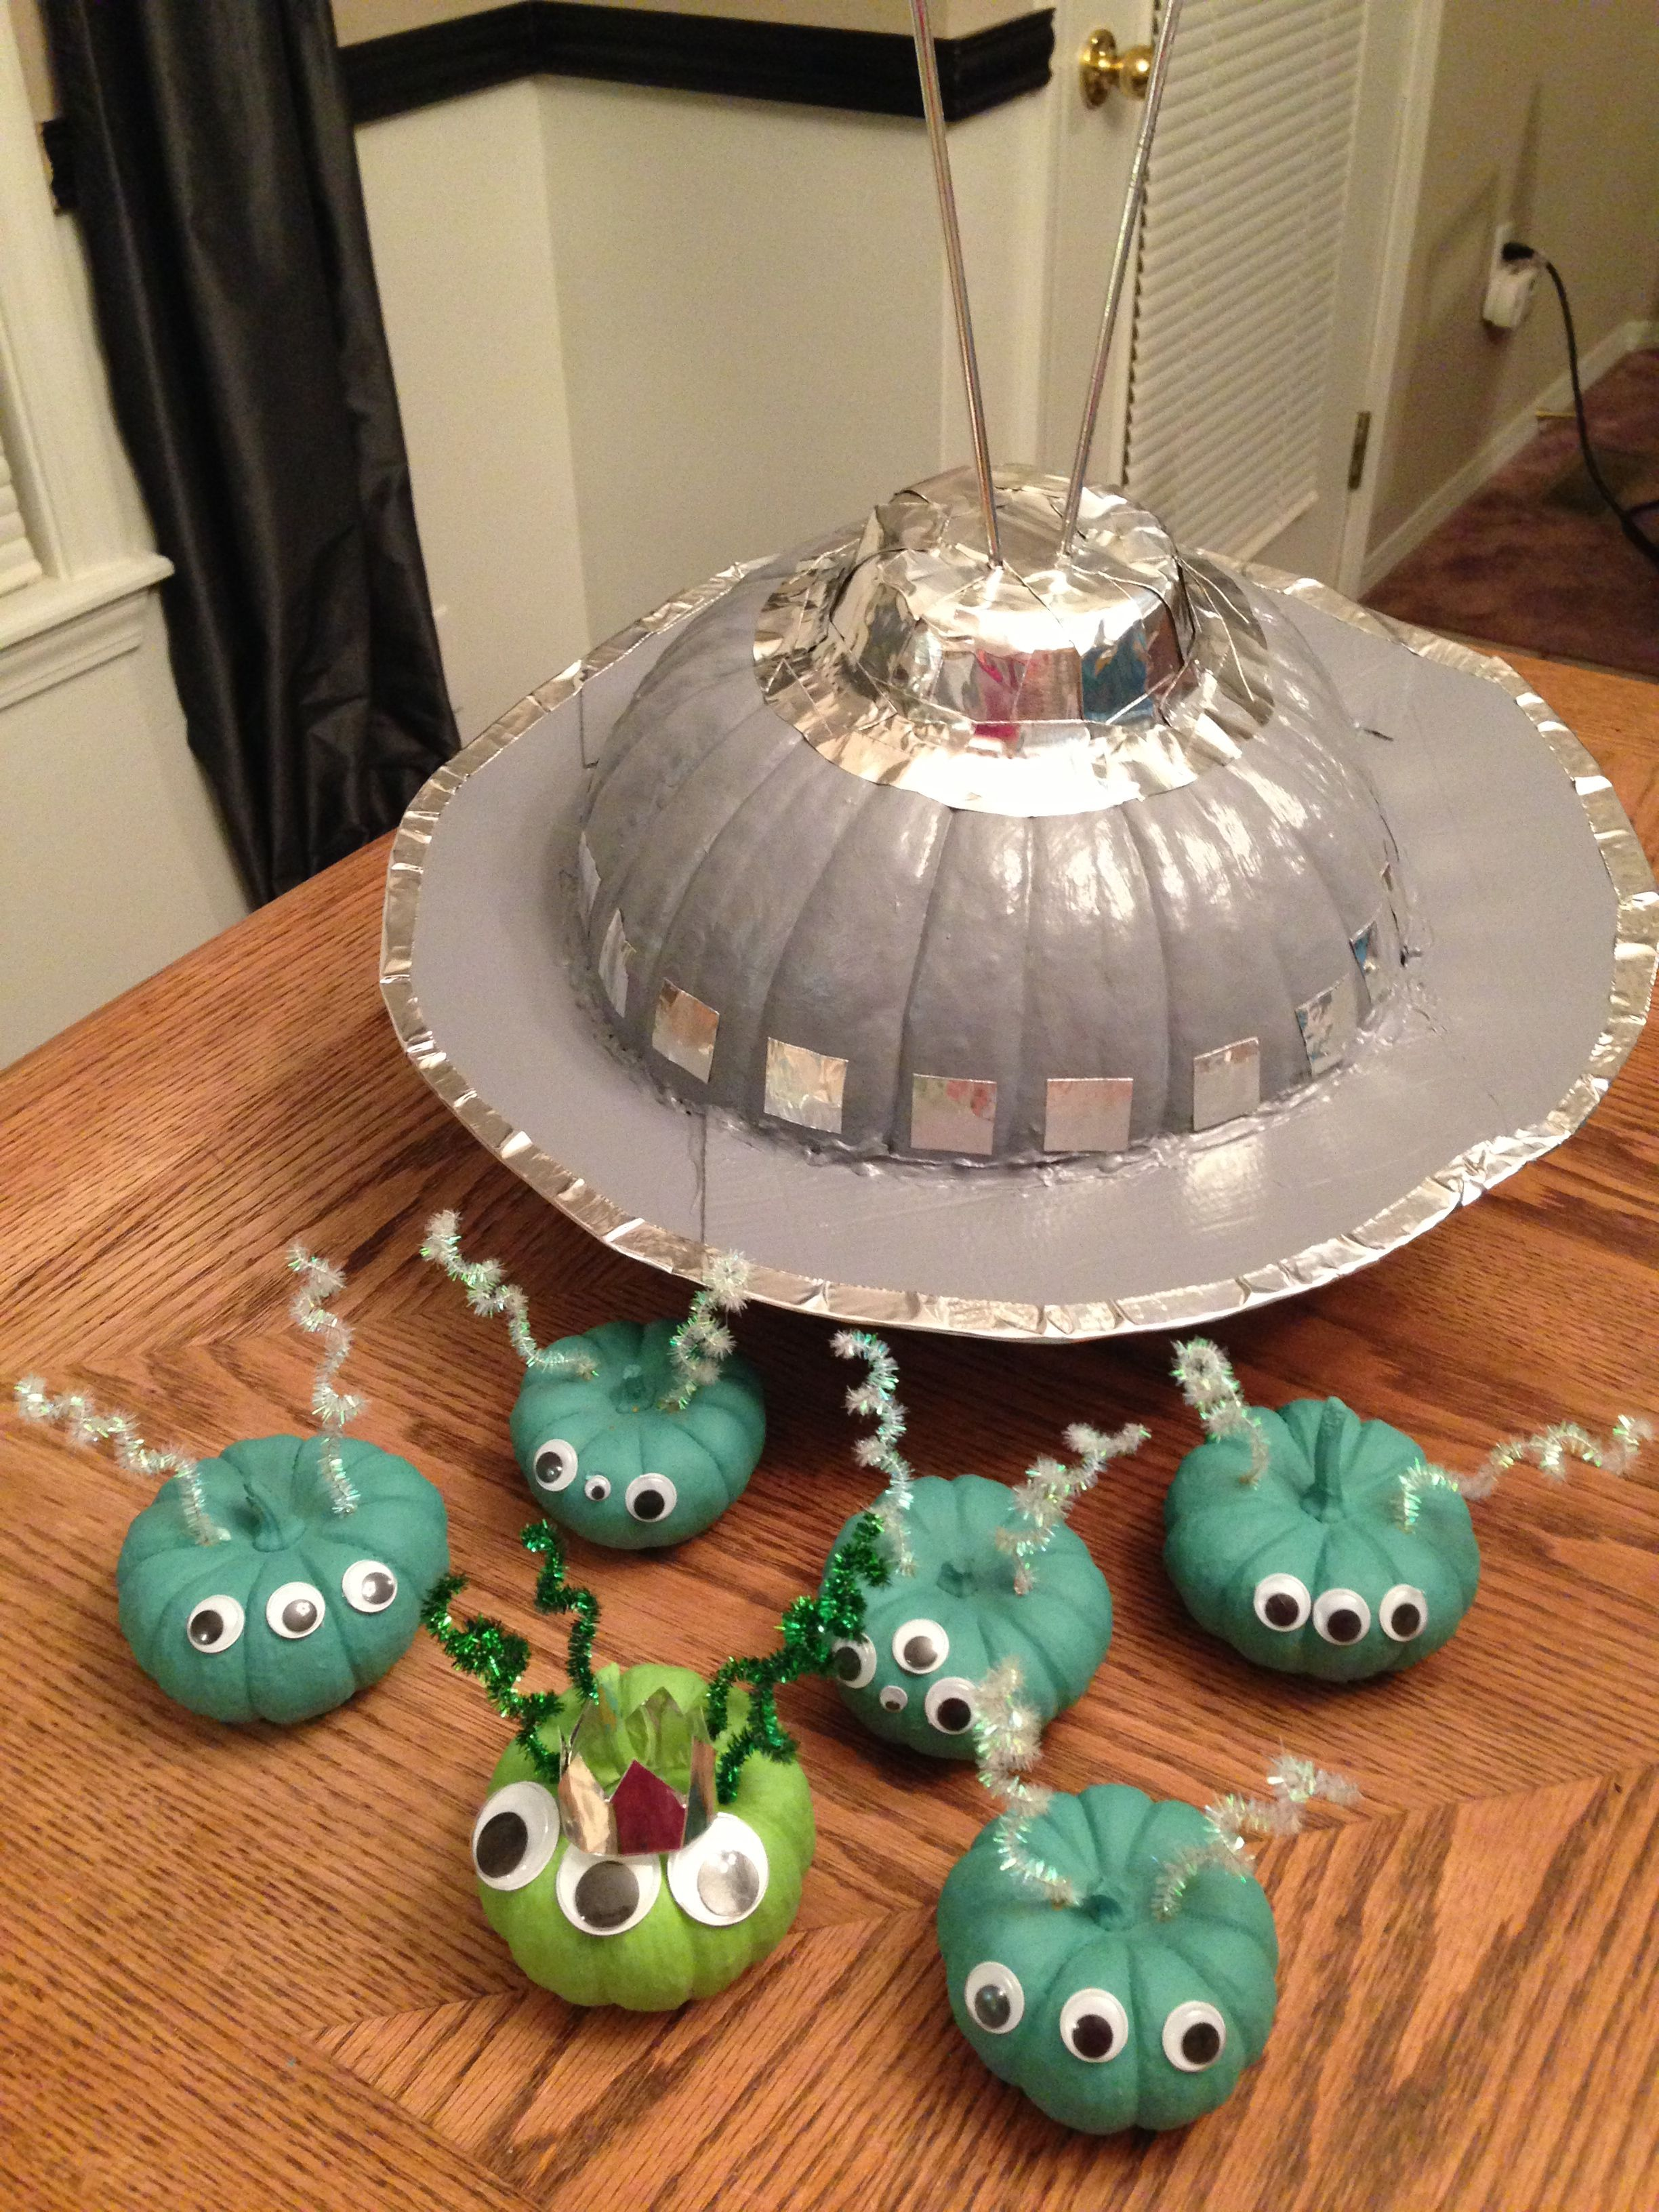 Space Ship And Aliens Decorated Pumpkins